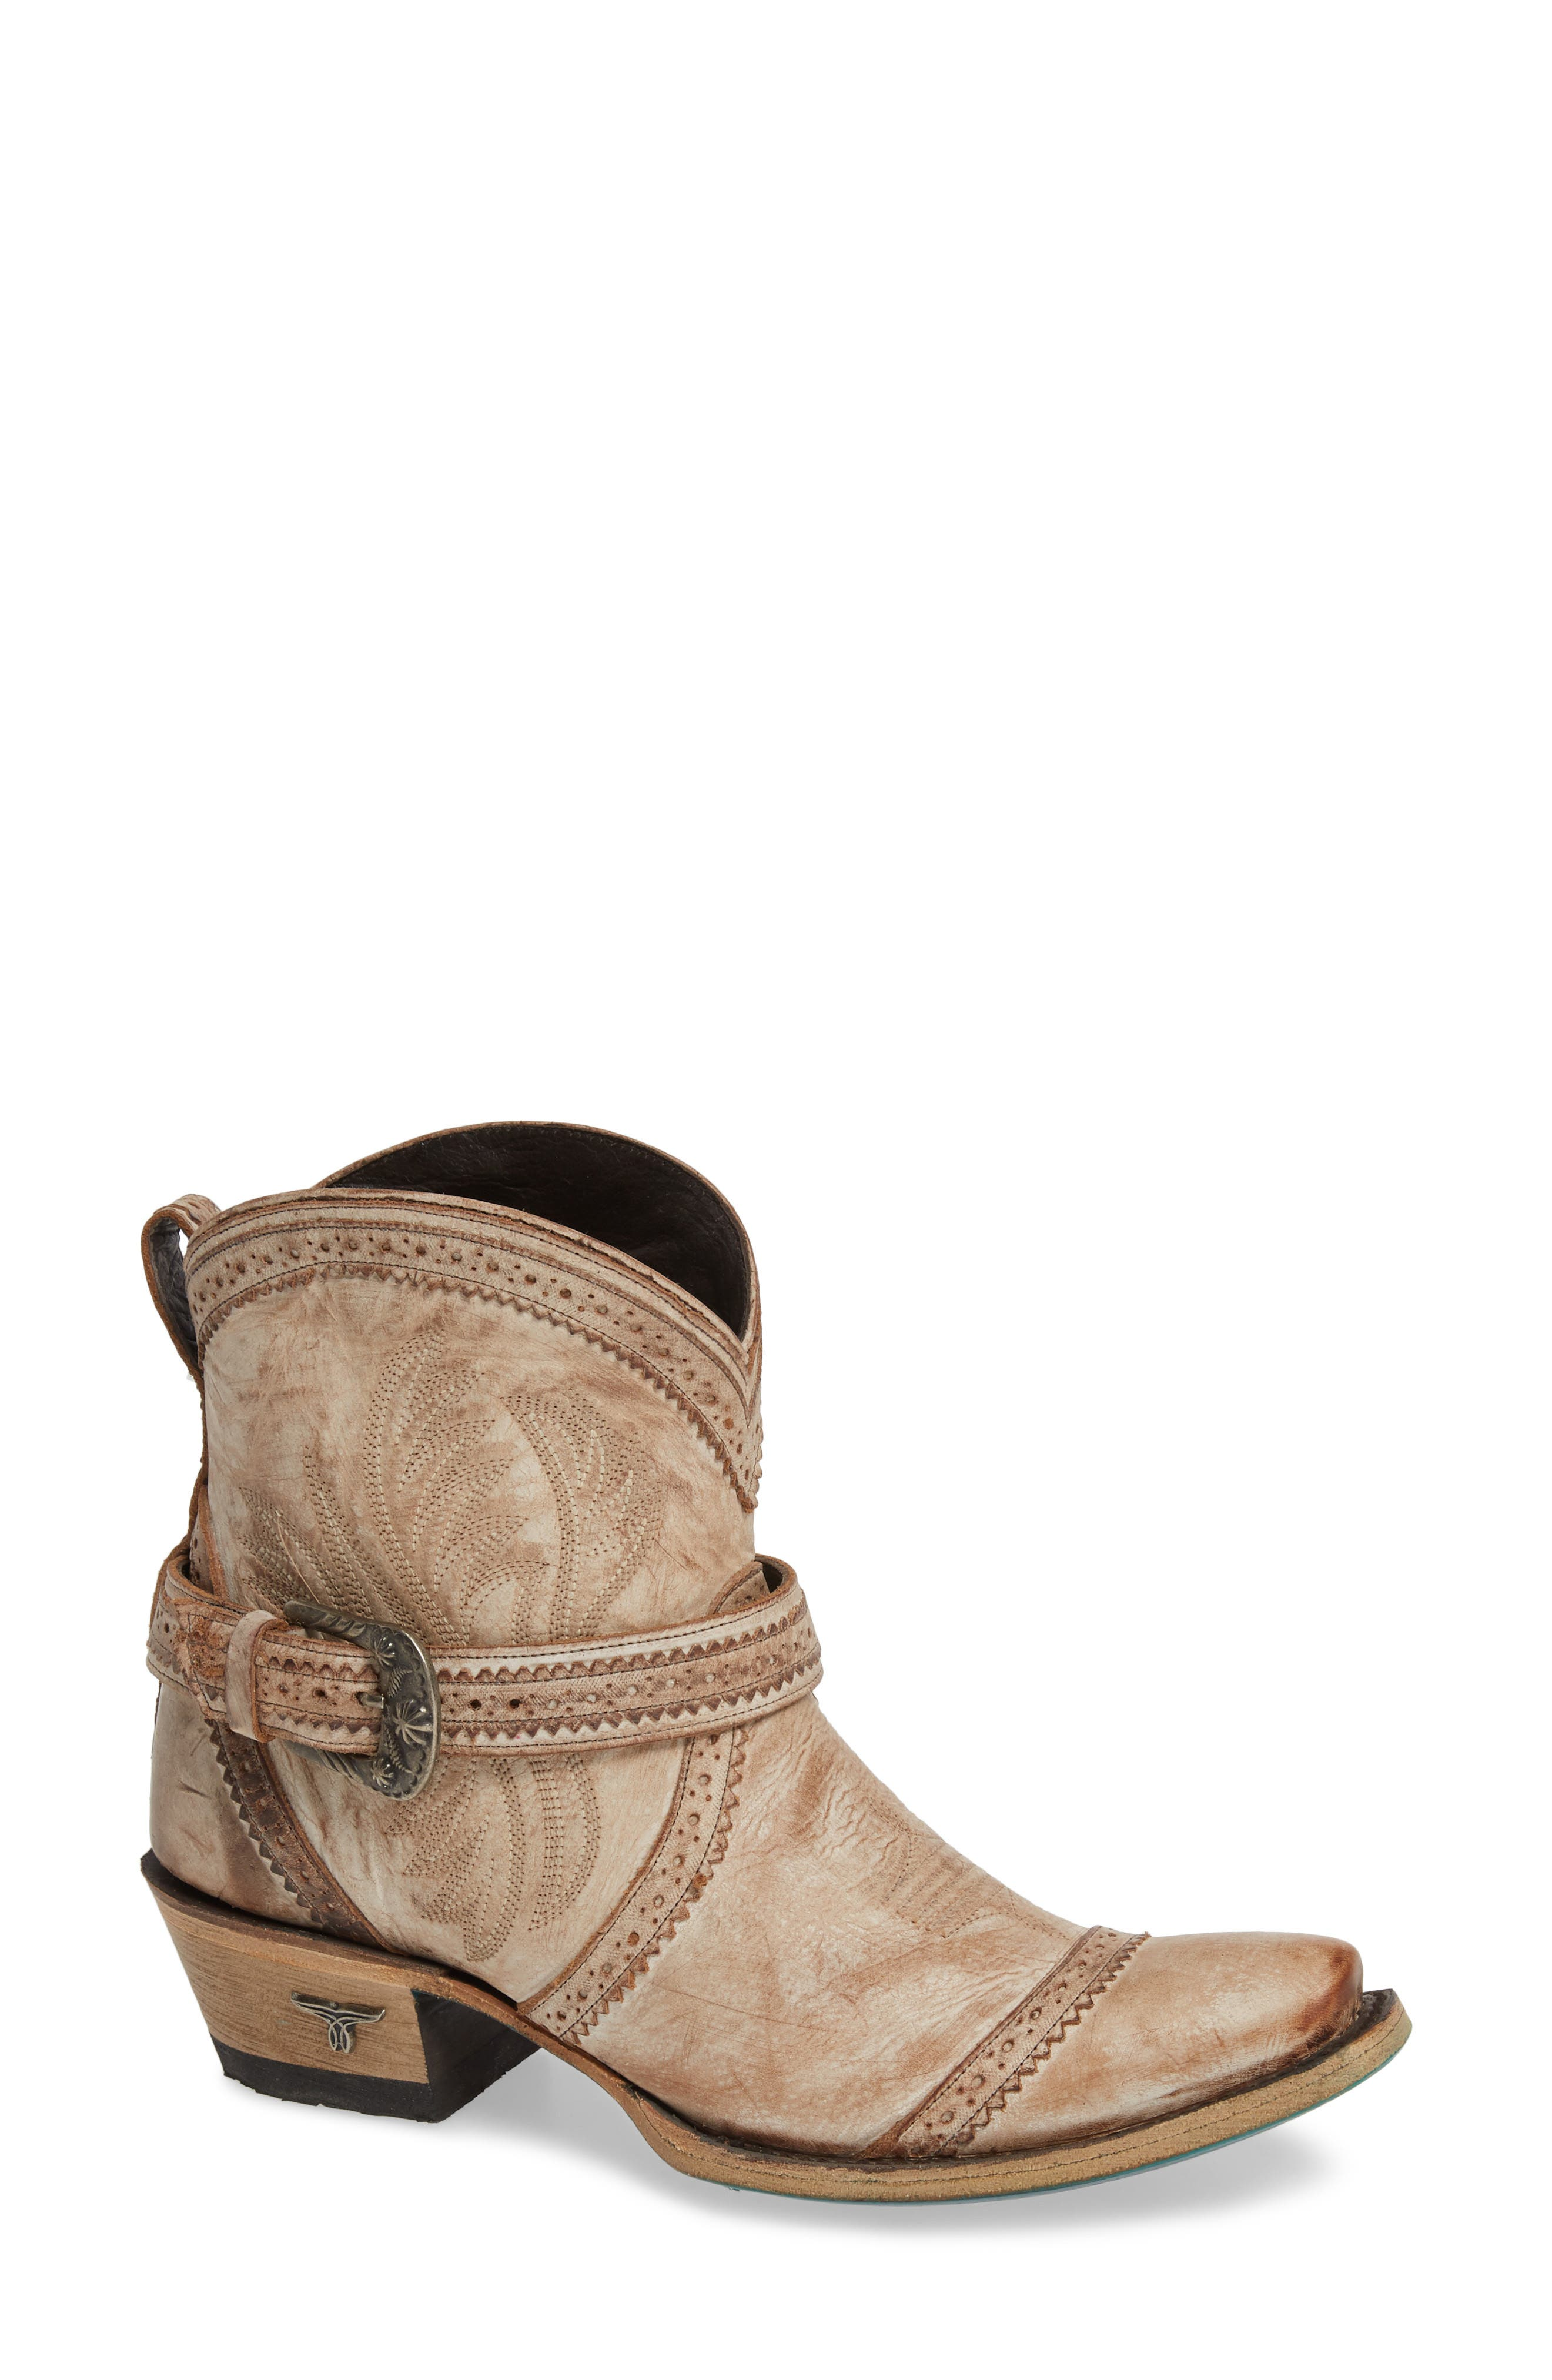 Handcrafted by skilled artisans in Leon, Mexico, this beautiful leather boot features menswear-inspired broguing and a Western buckle at the ankle strap. Style Name: Lane Boots Ballyhoo Bootie (Women). Style Number: 5727908. Available in stores.